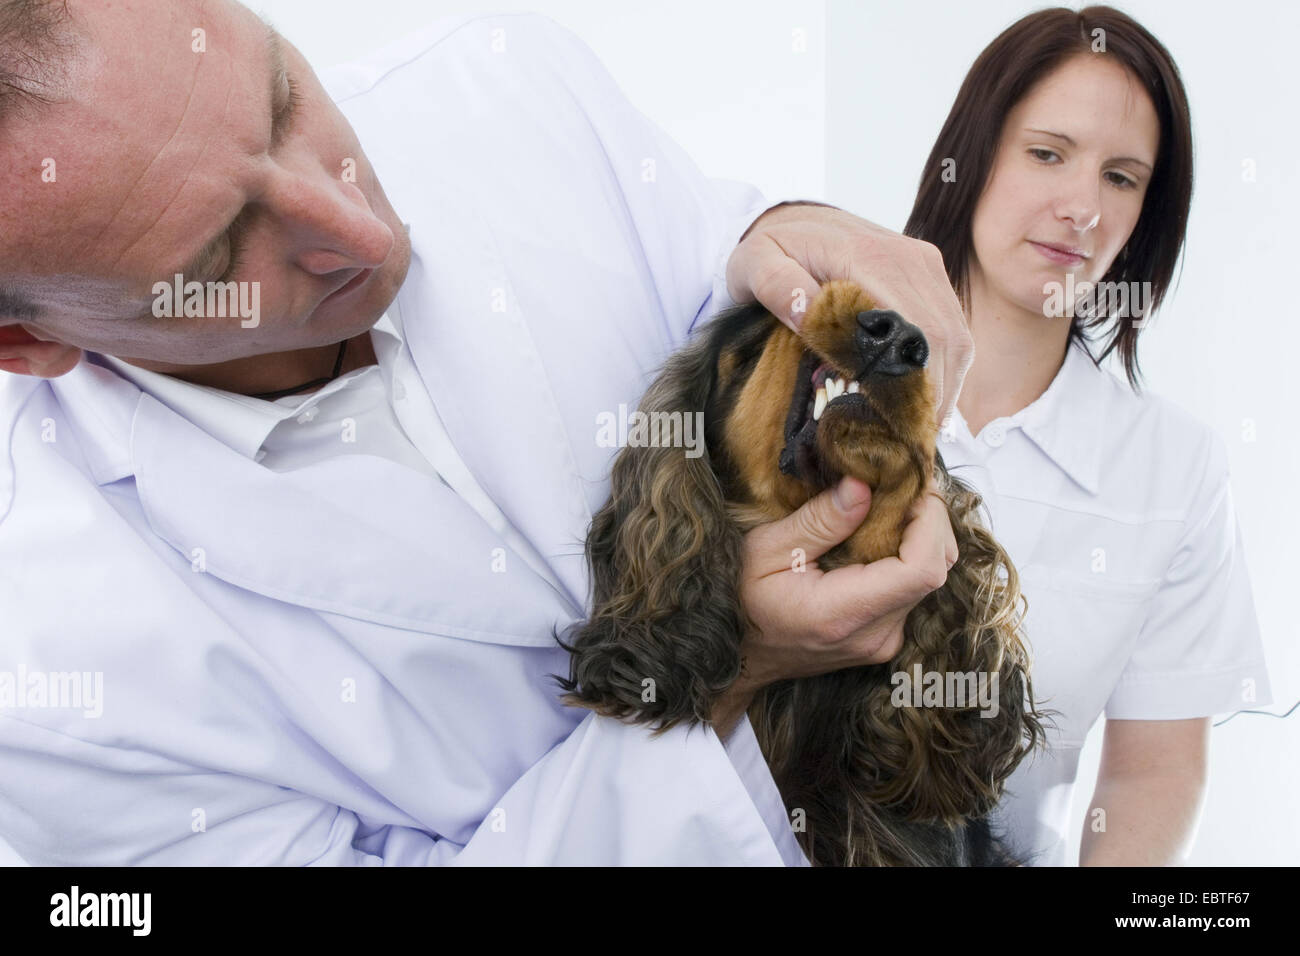 English Cocker Spaniel (Canis lupus f. familiaris), vet checking the teeth of a dog - Stock Image